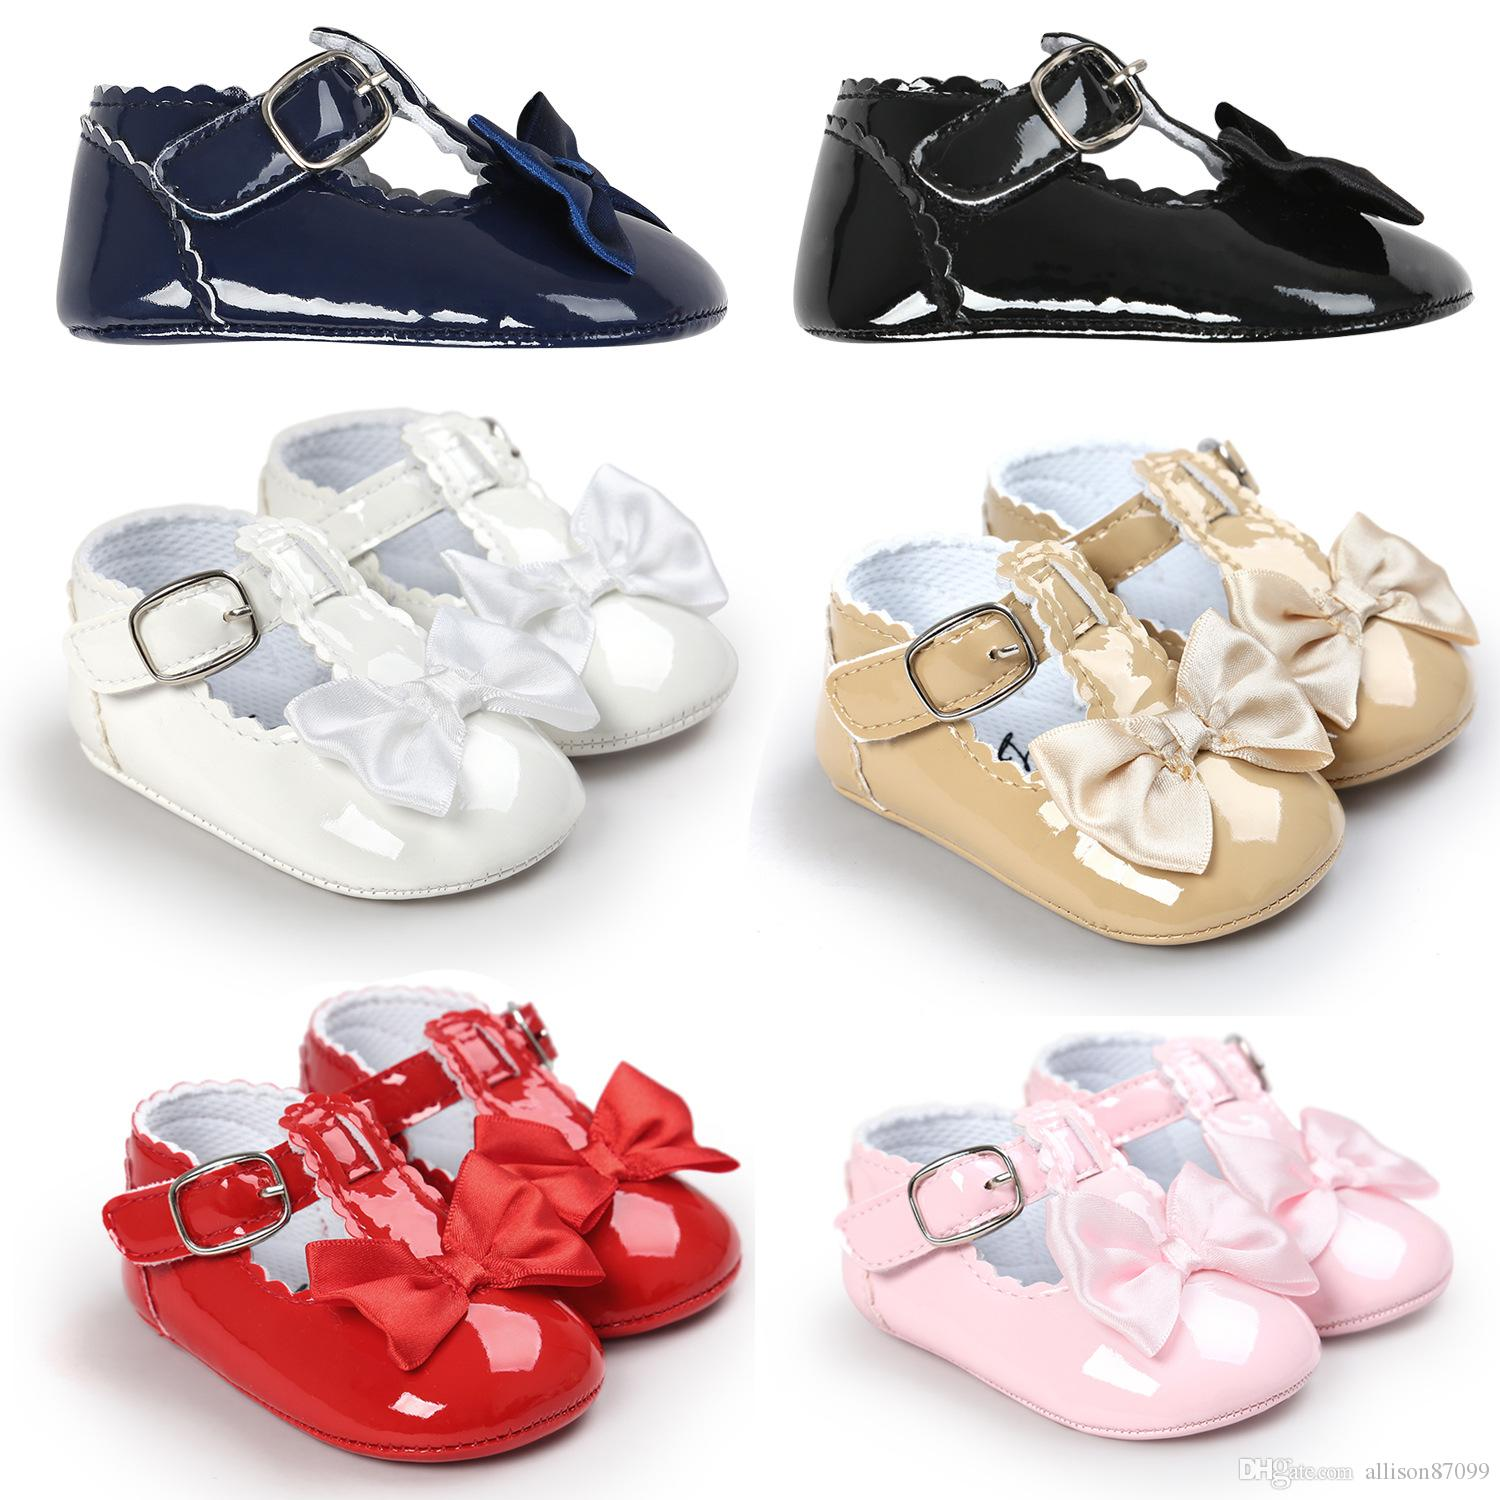 98c47cd2e25fd 2019 Baby Girl Shoes Bows Princess Party Shoes Infants Birthday Shoes  Patent Leather Buckle Baby First Walkers 2017 Spring New DHL FREE From  Allison87099